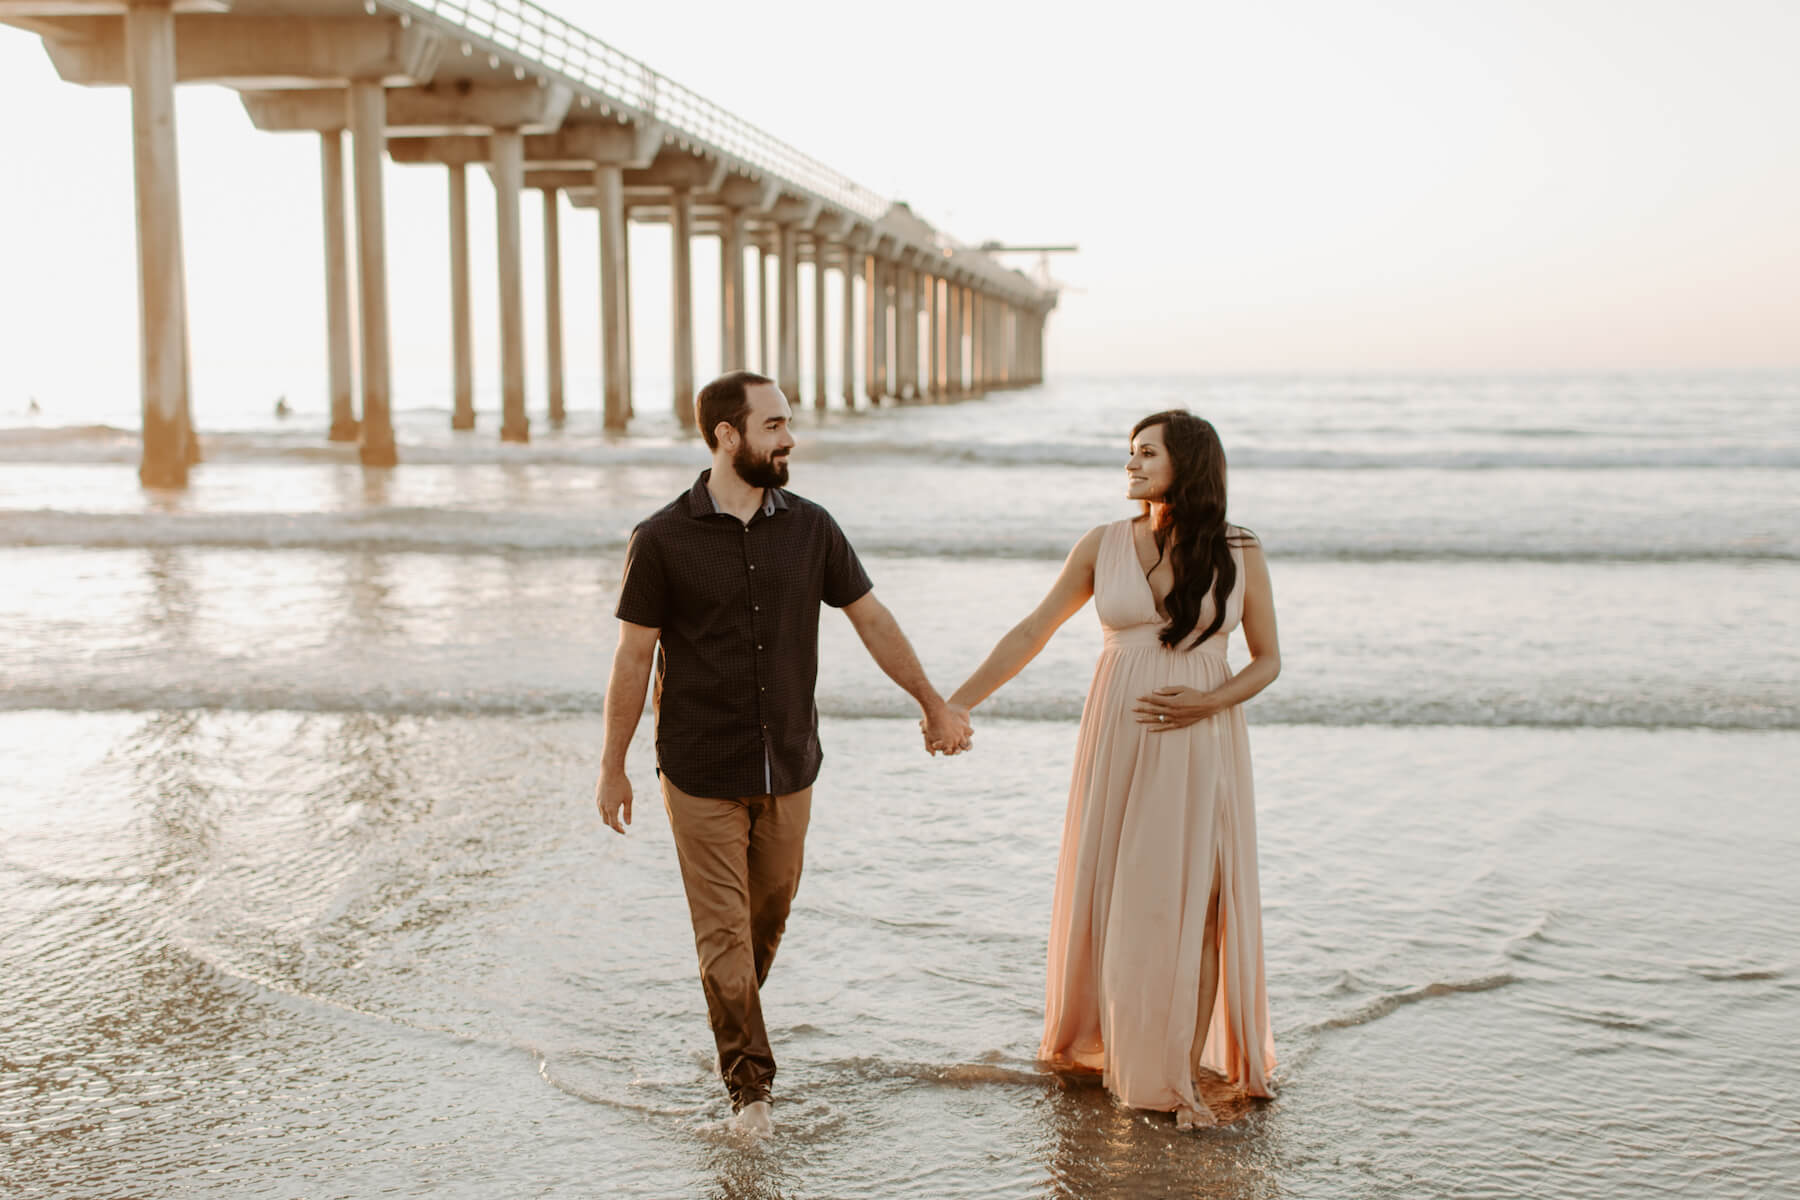 pregnant couple standing on the beach near the ocean in San Diego, California